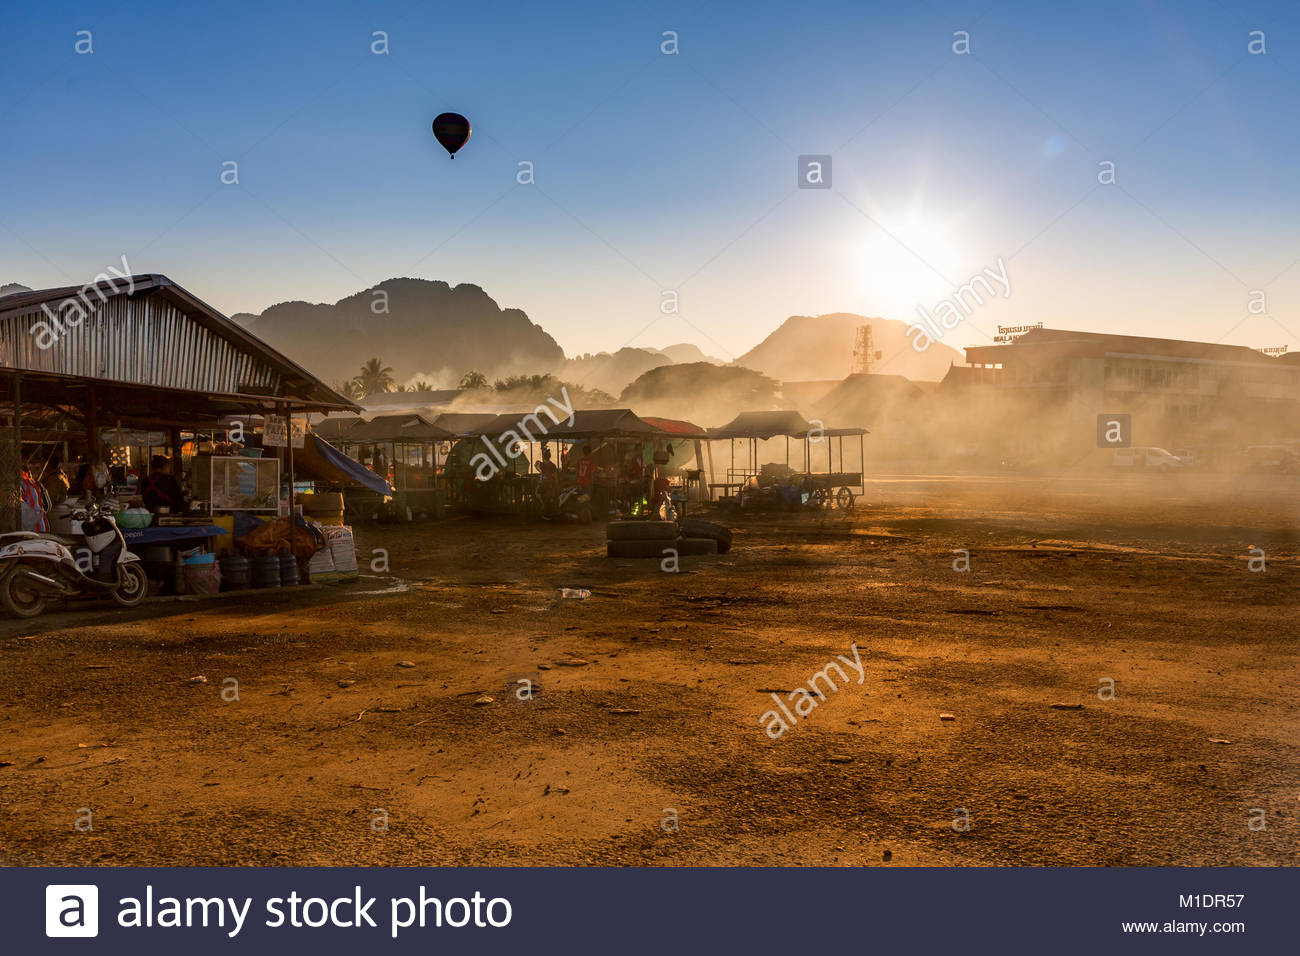 Dusty place in Vang vieng - Stock Image